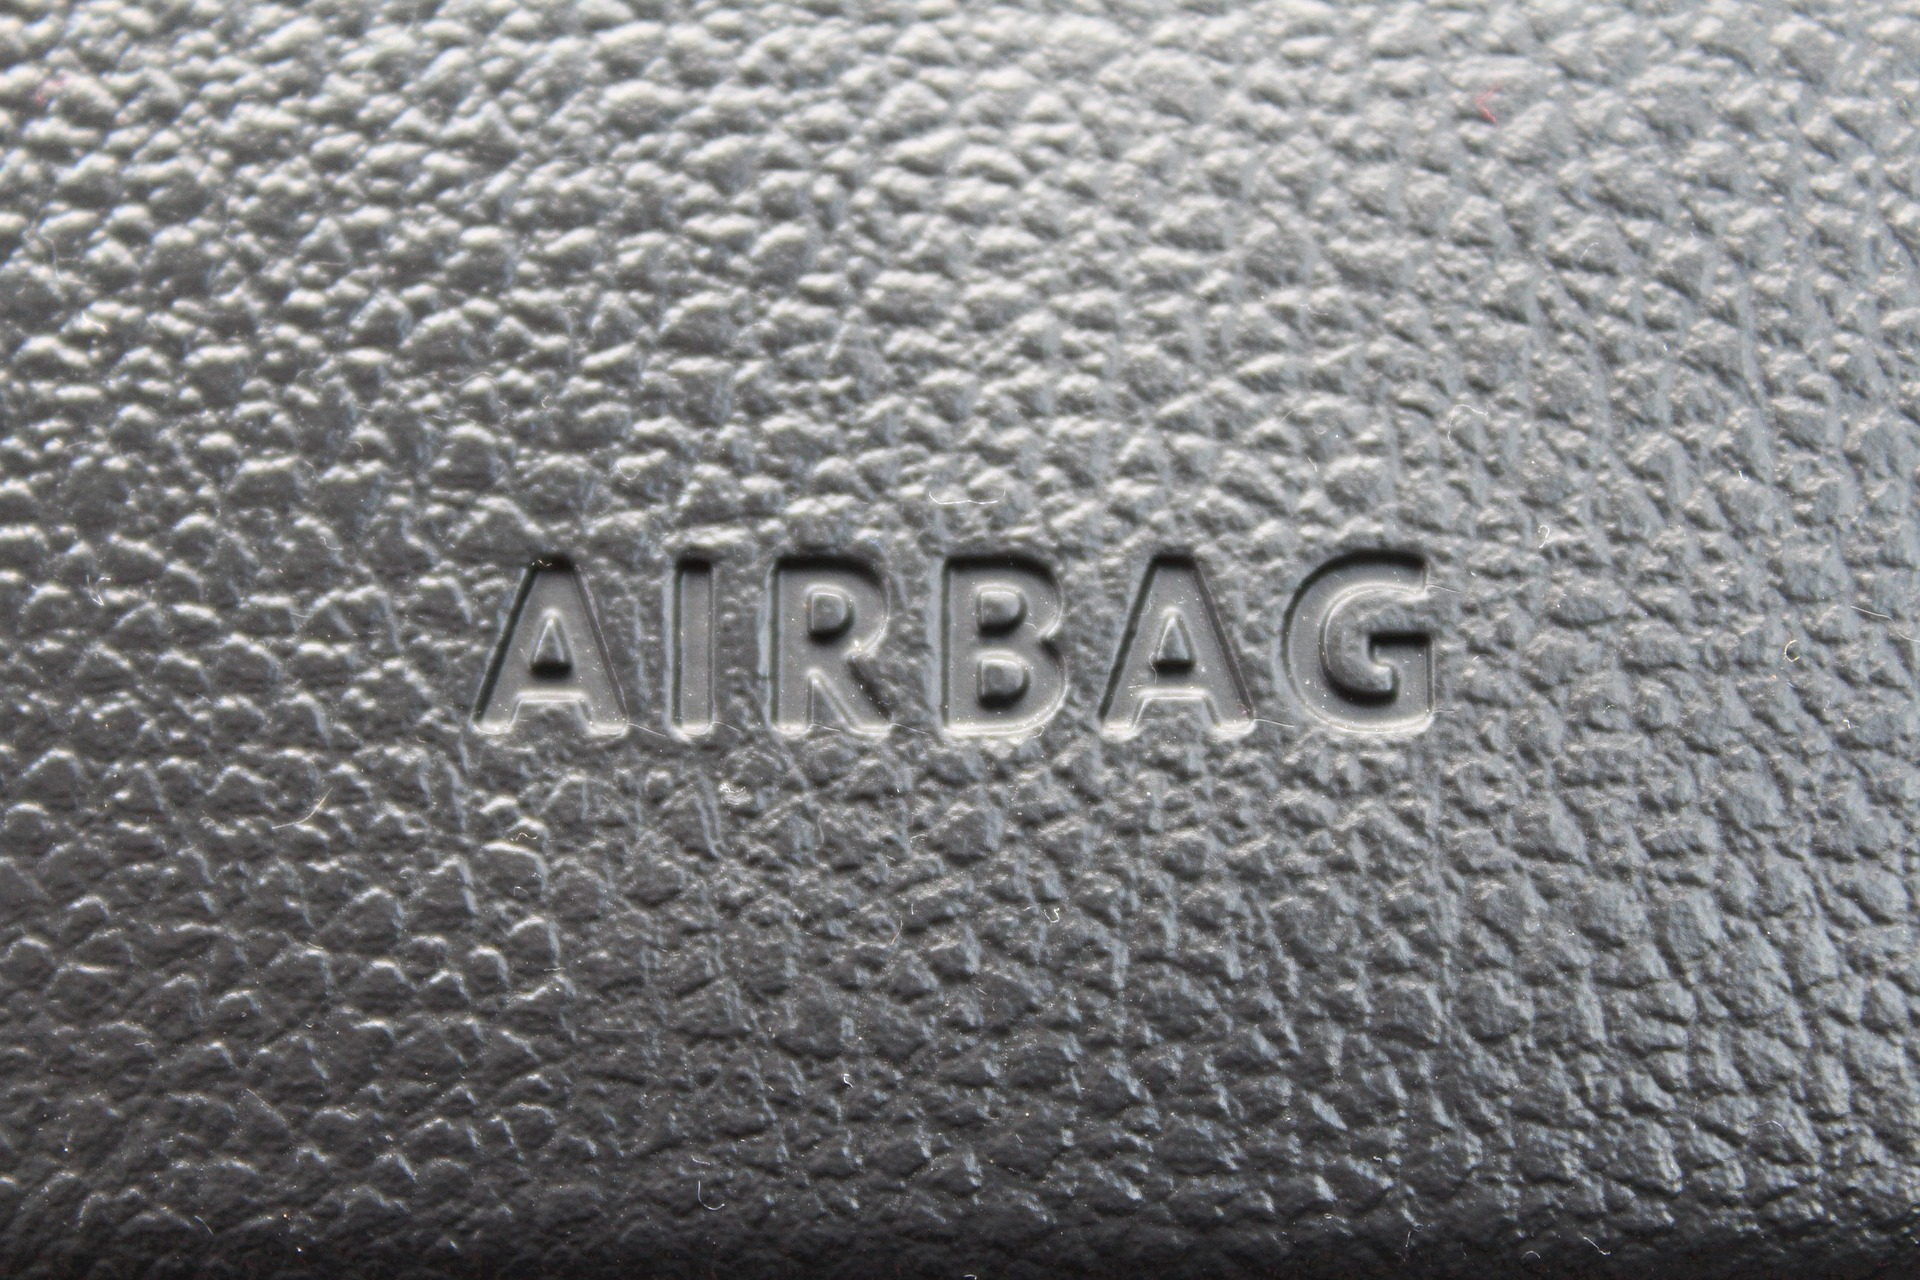 Detroit Takata Air Bag Injury Lawyer